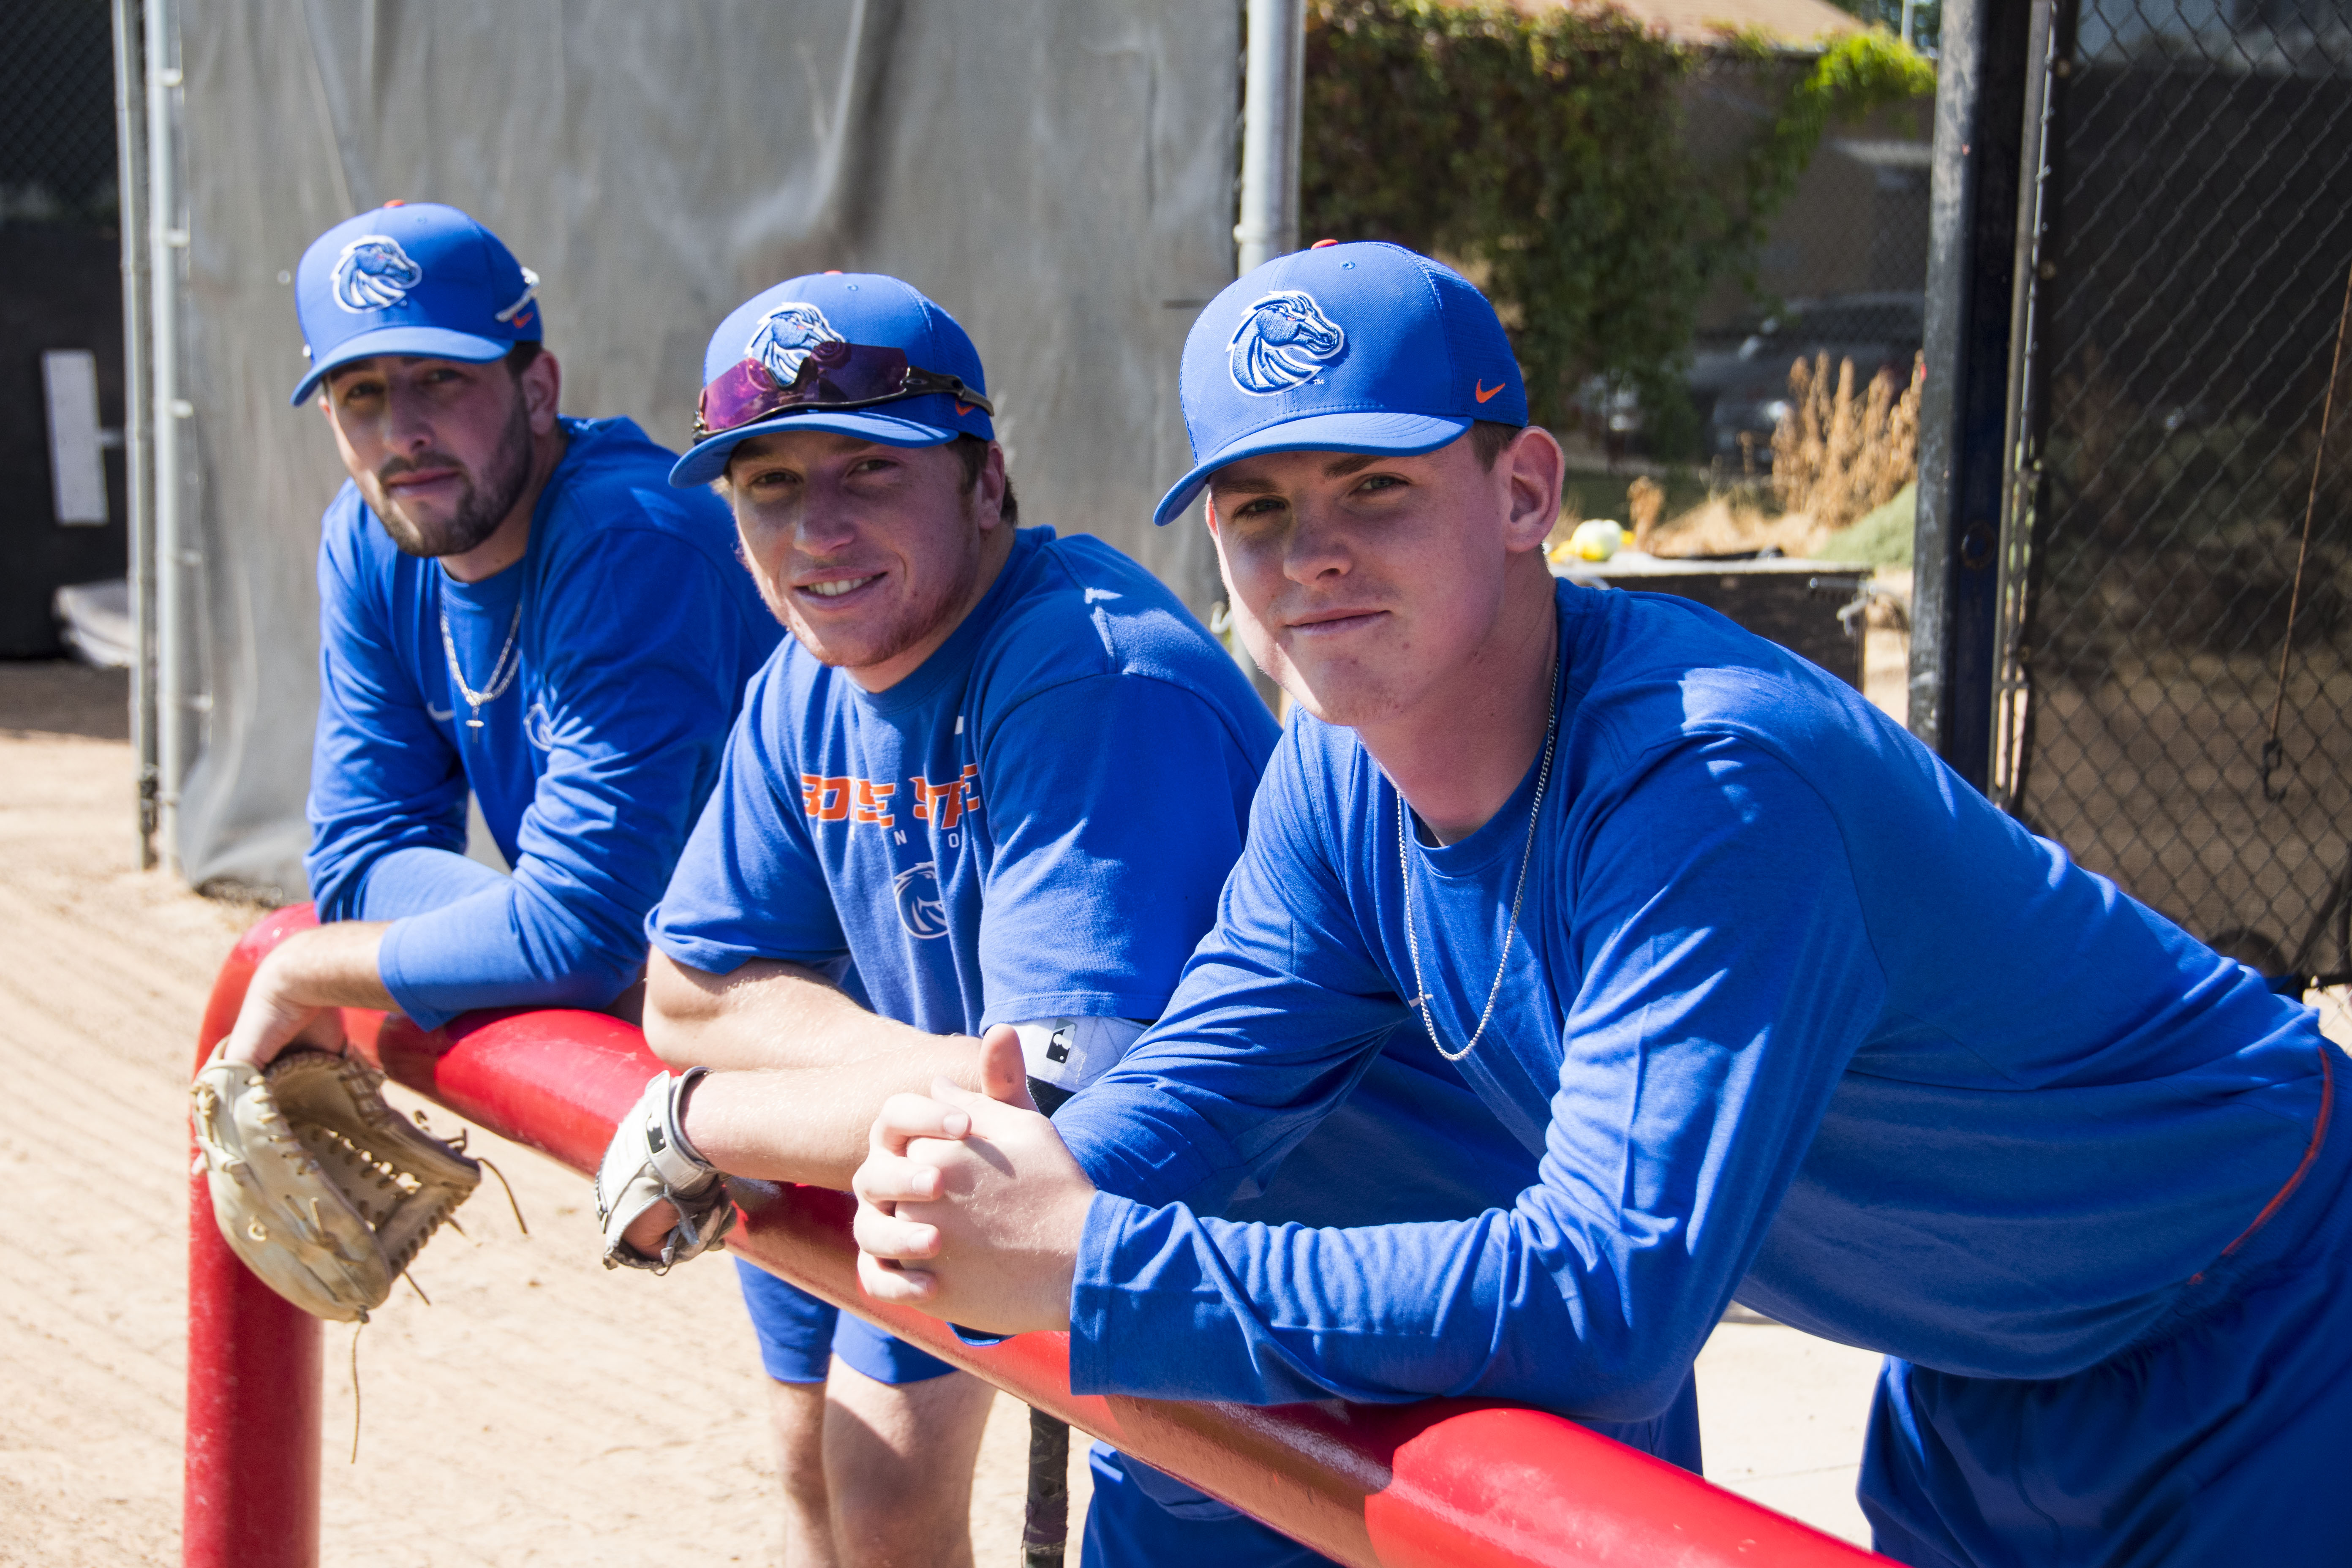 Members of the media met with the new Boise State Baseball team and even took a swing at a baseball or two Friday in Boise.{ }The Boise State baseball program is slated to return to the diamond for the 2020 season. (Axel Quartarone Photo)